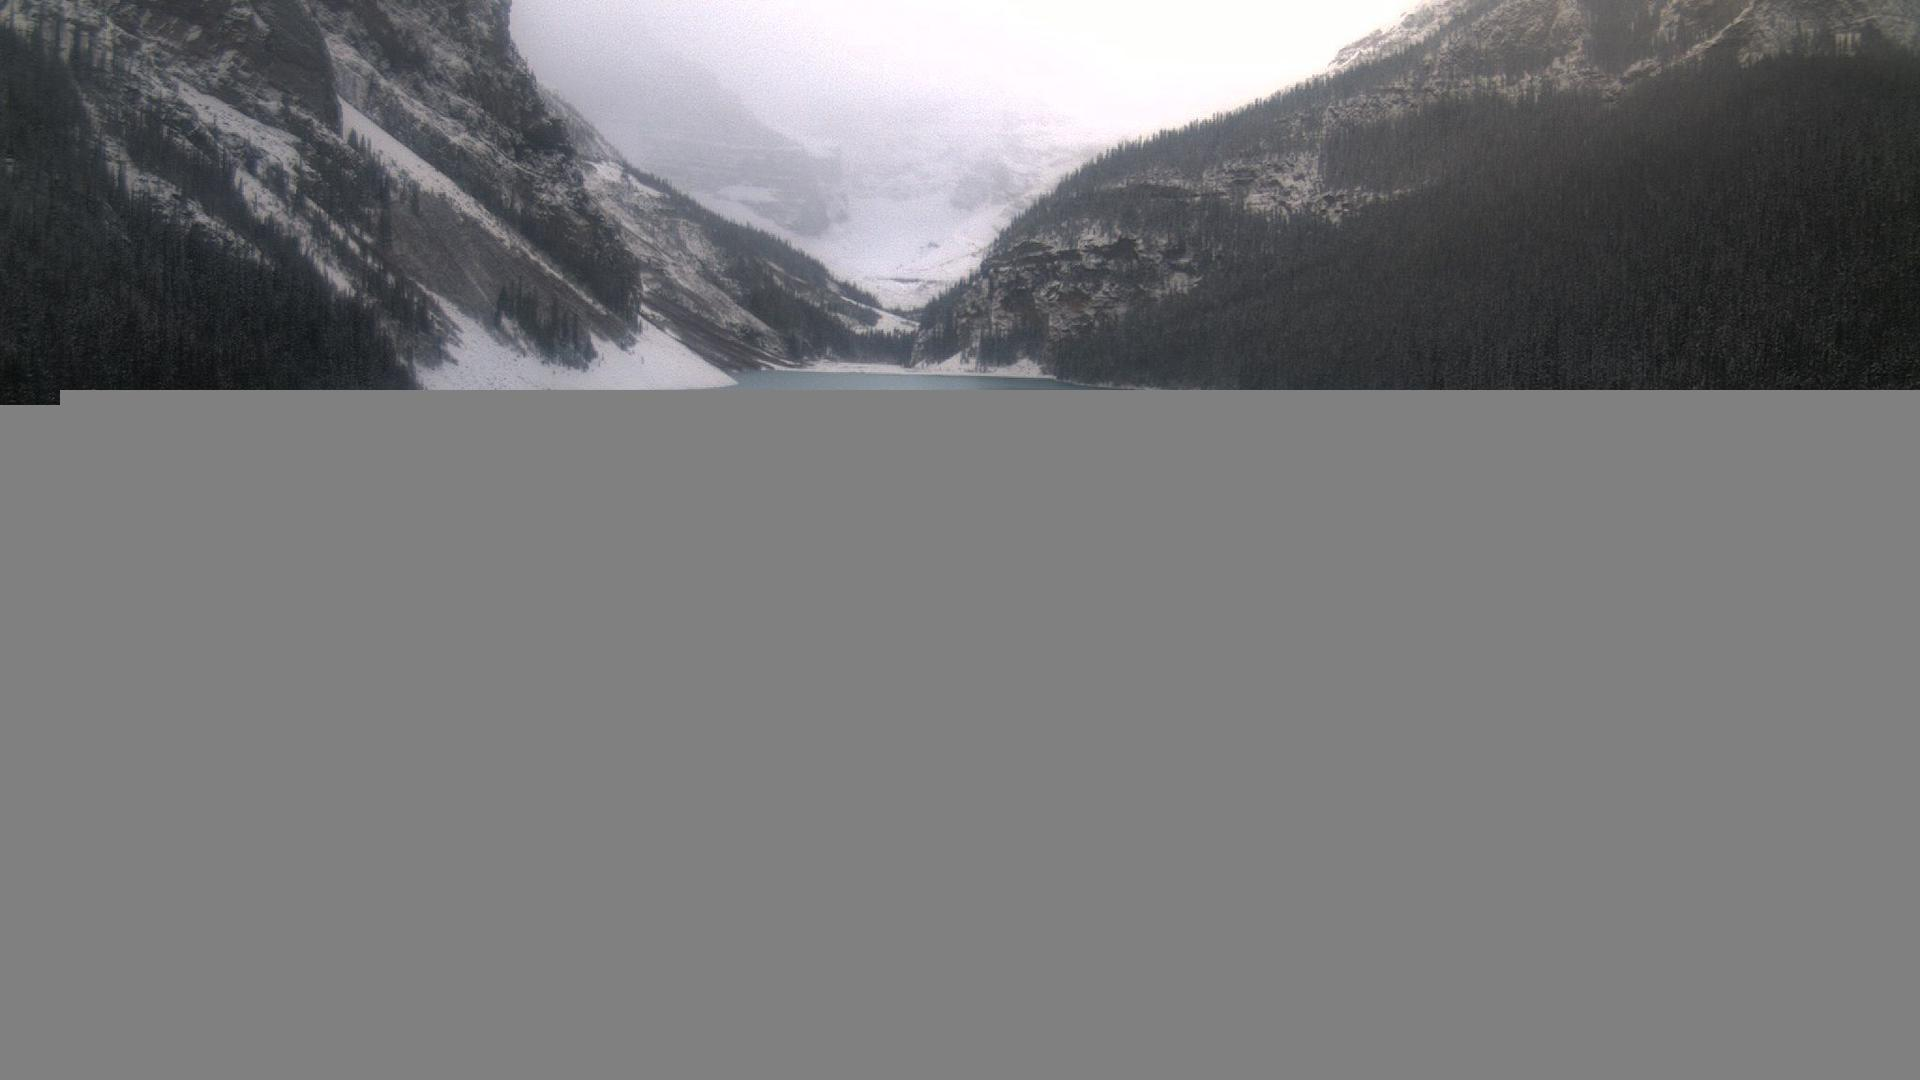 Webcam Lake Louise